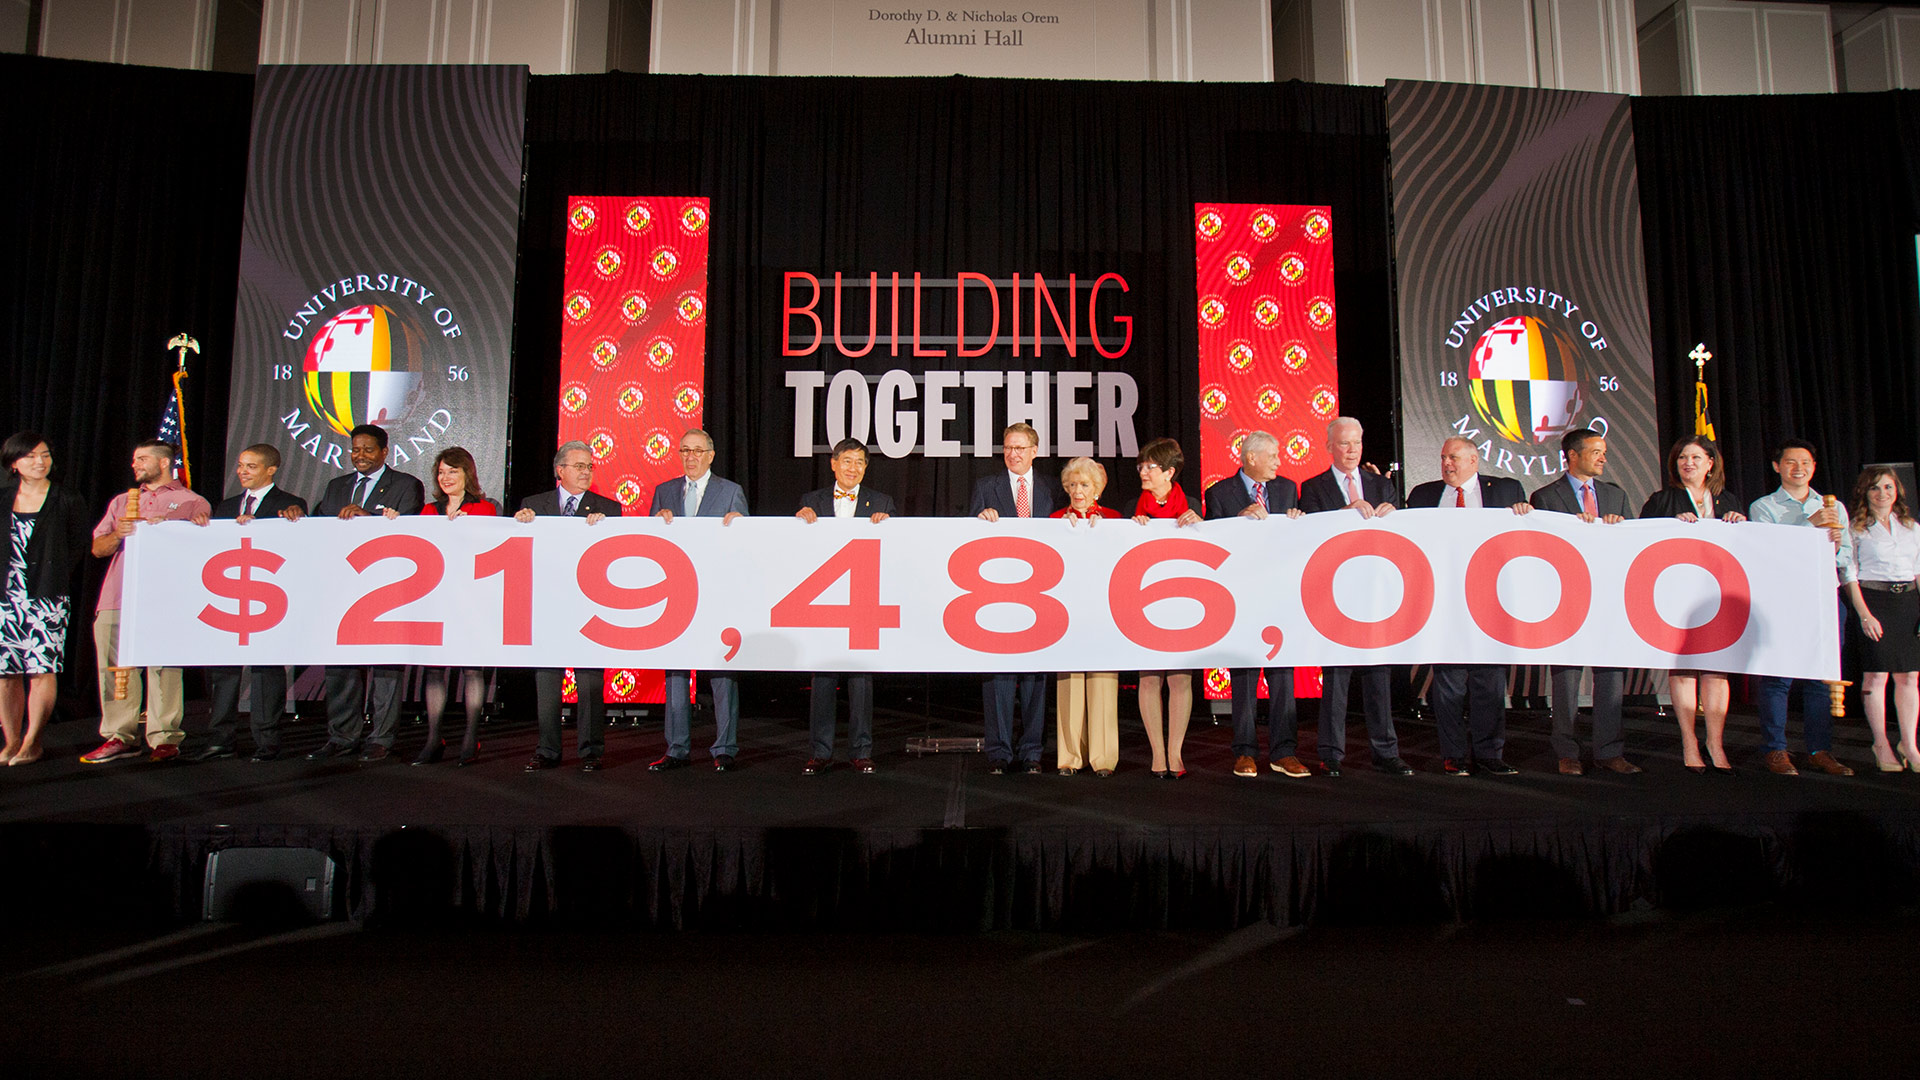 Building Together: An Investment for Maryland